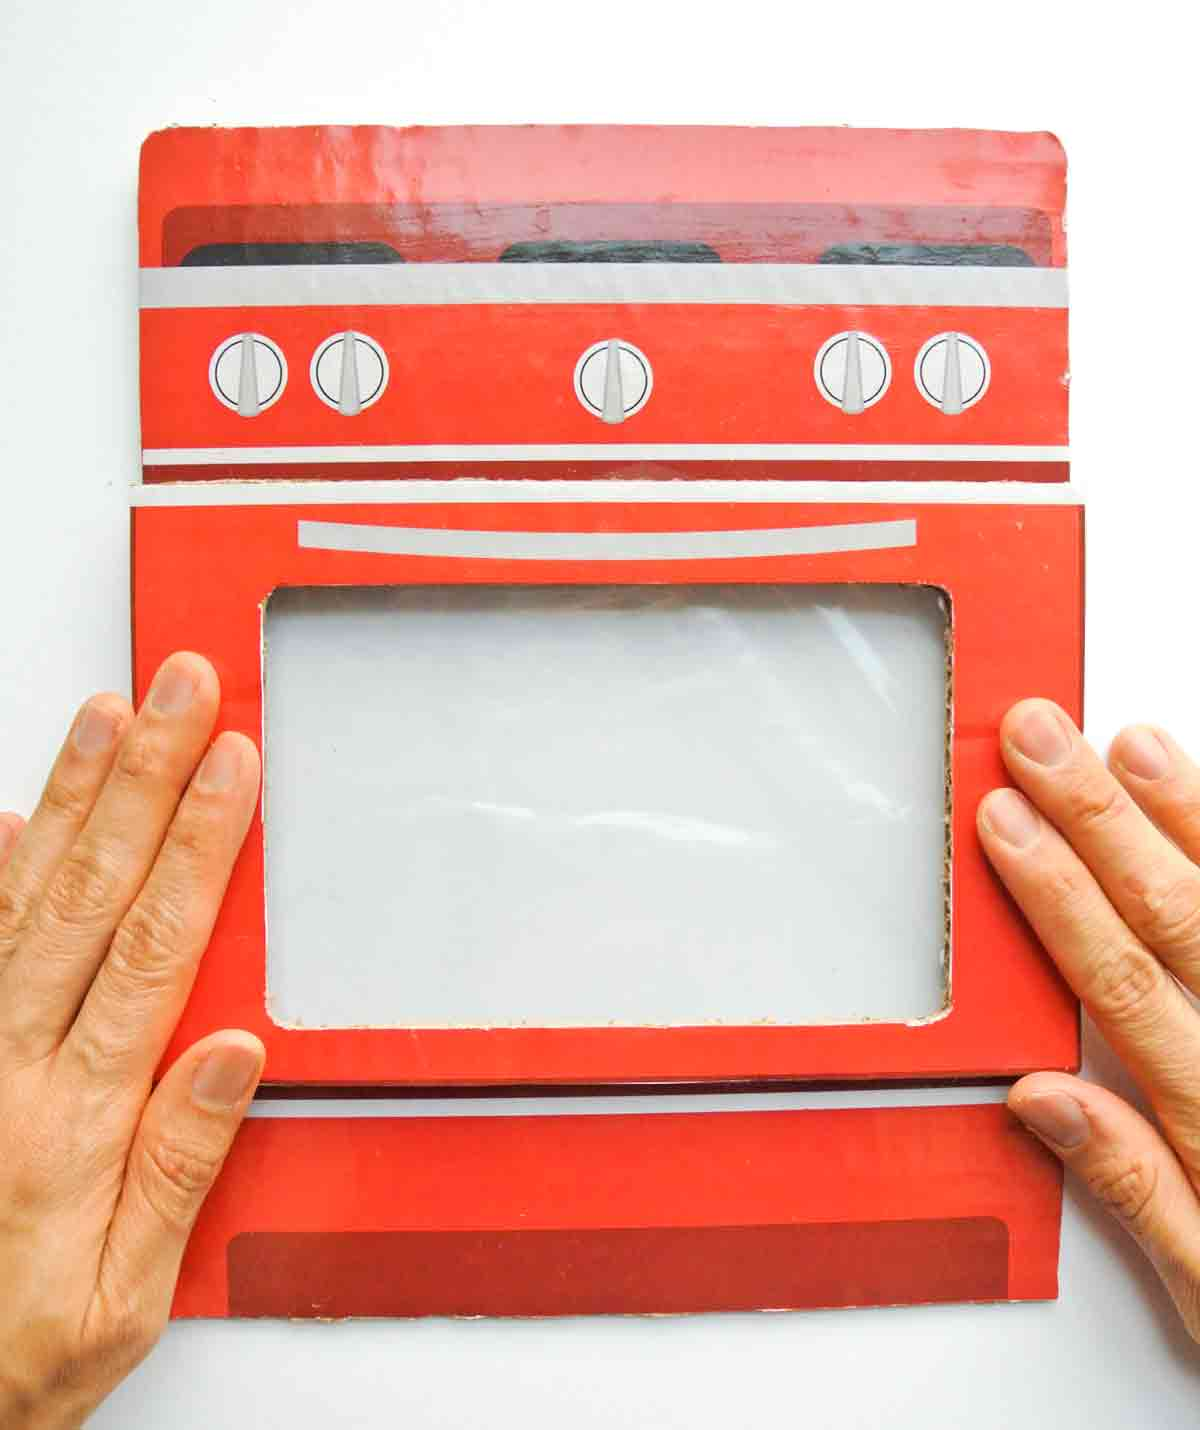 Gluing Front oven door on top of cardboard oven. Toddler Cookie Counting Activity Free Printable